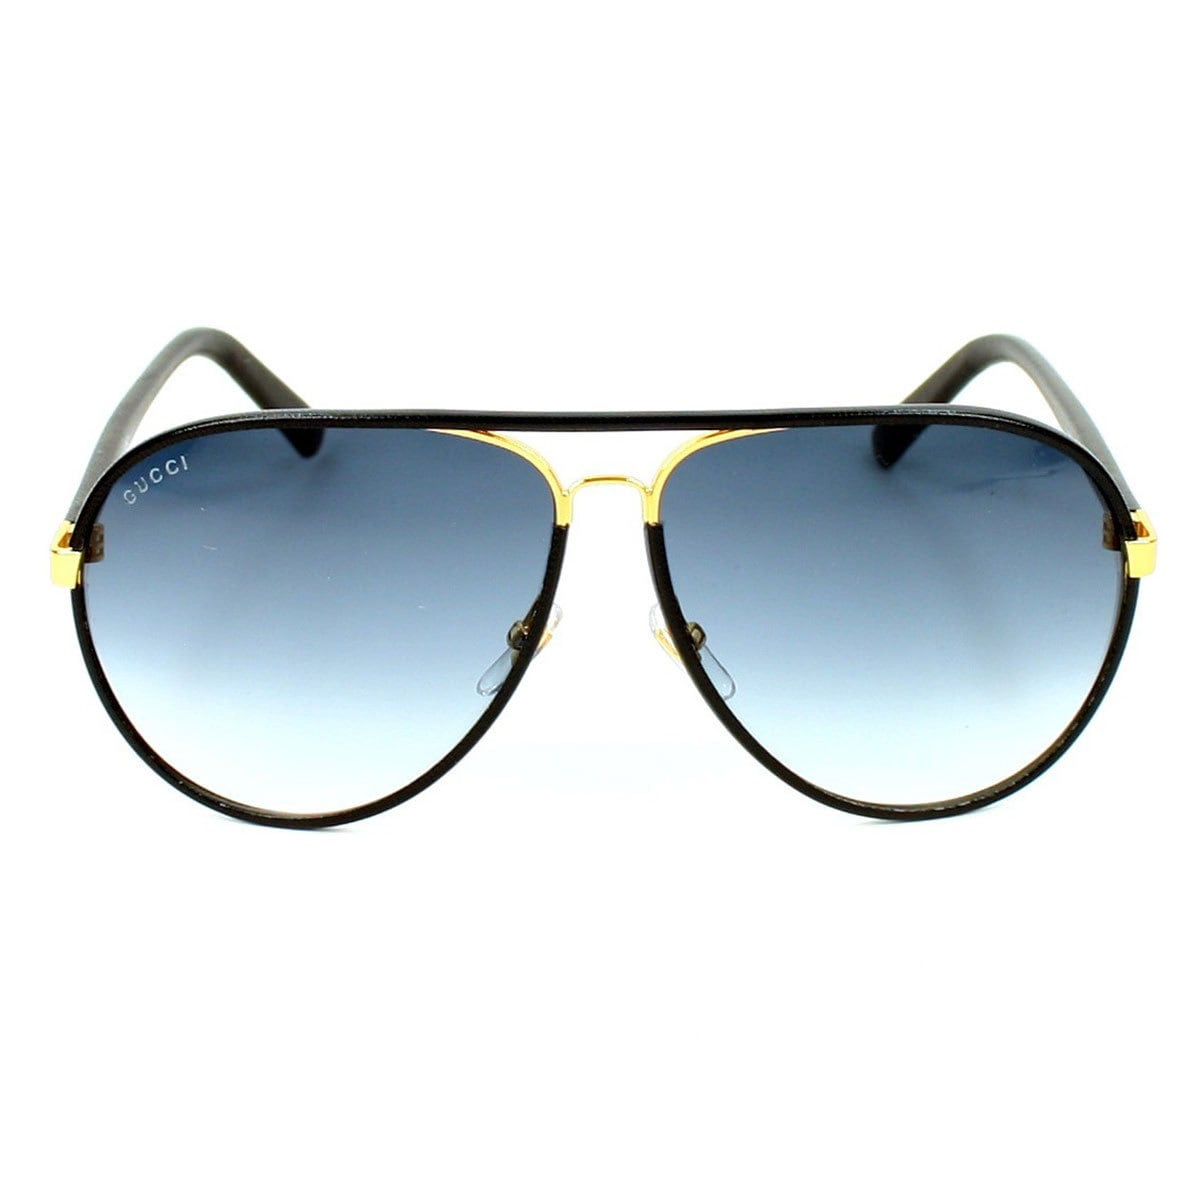 fee4306906f Shop Gucci Men s GG 2887 S Metal Aviator Sunglasses - Black - Free Shipping  Today - Overstock - 9997431